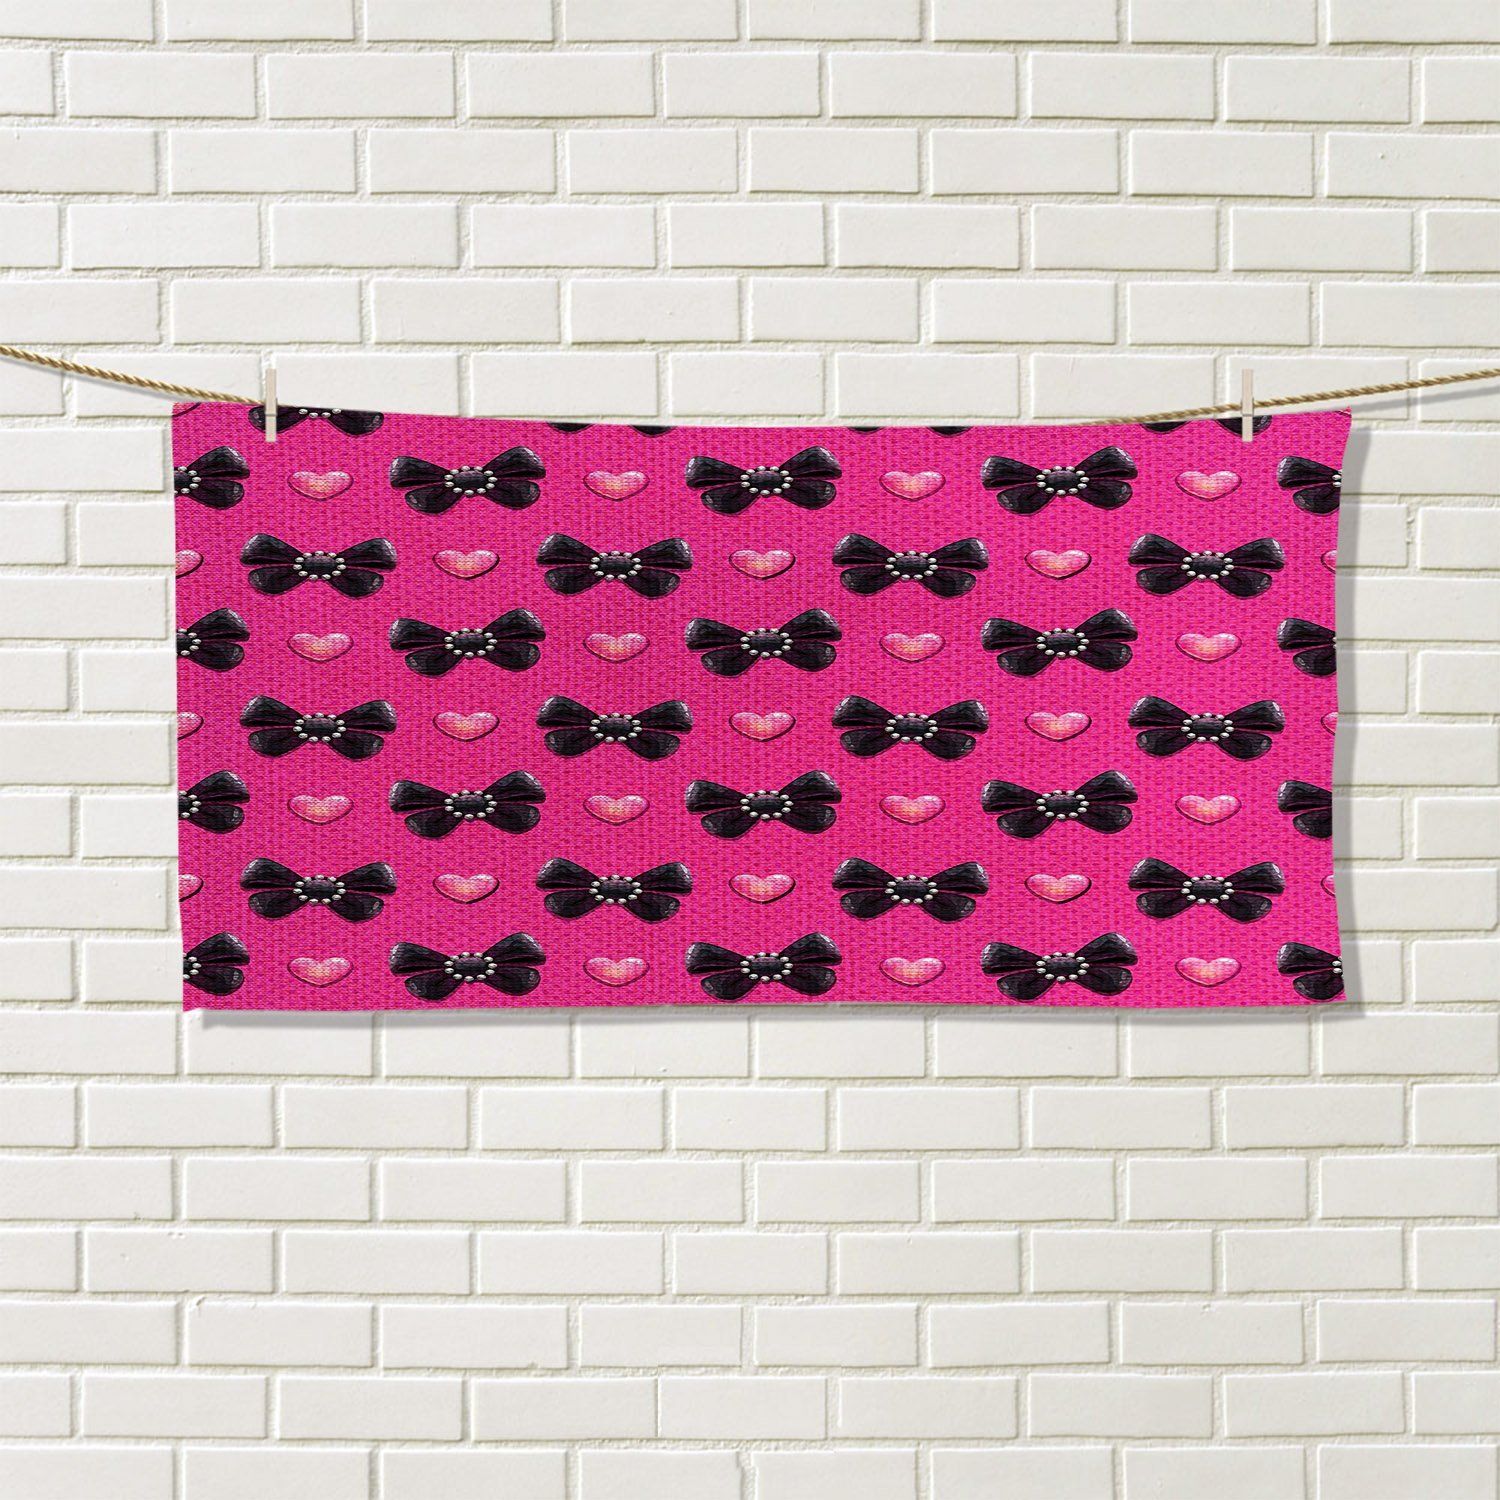 Pearls floral hand towels Bow Ties with Hearts Feminine Love Valentines Day Romantic Theme Dotted BackgroundCustom towel Pink Black by familytaste (Image #1)